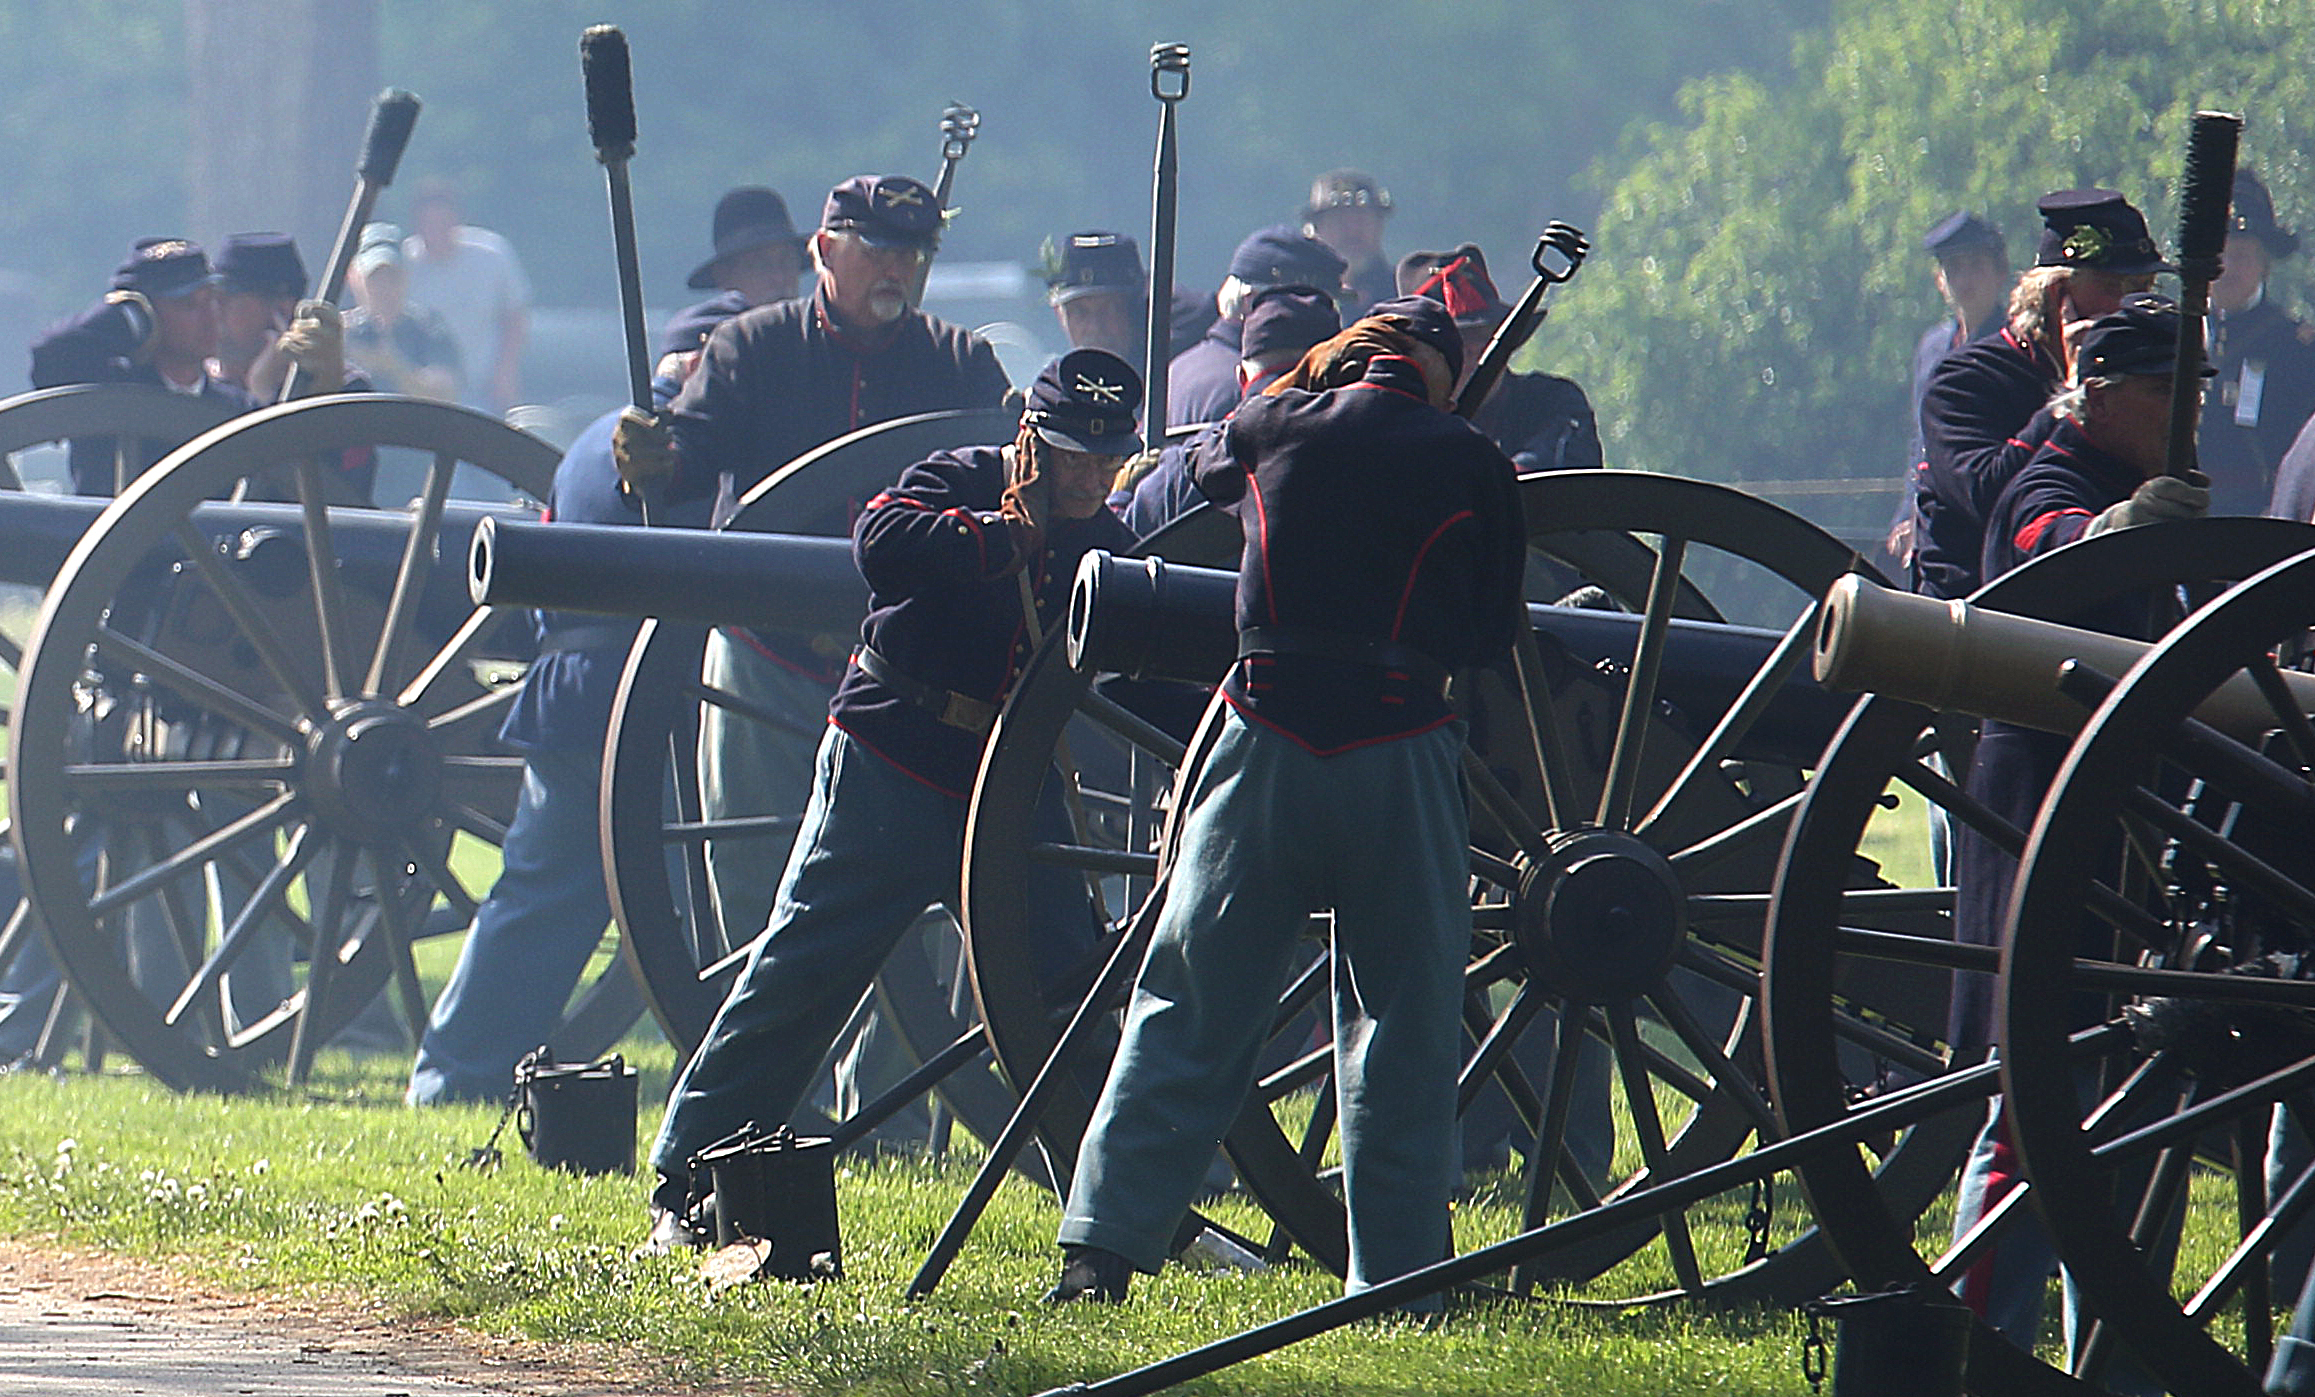 Thirty-six cannon roundsrepresenting eachstatein the Union at the end of the Civil War,sounded as the funeral ceremony concluded Sunday atOak Ridge Cemetery. David Spencer/The State Journal-Register